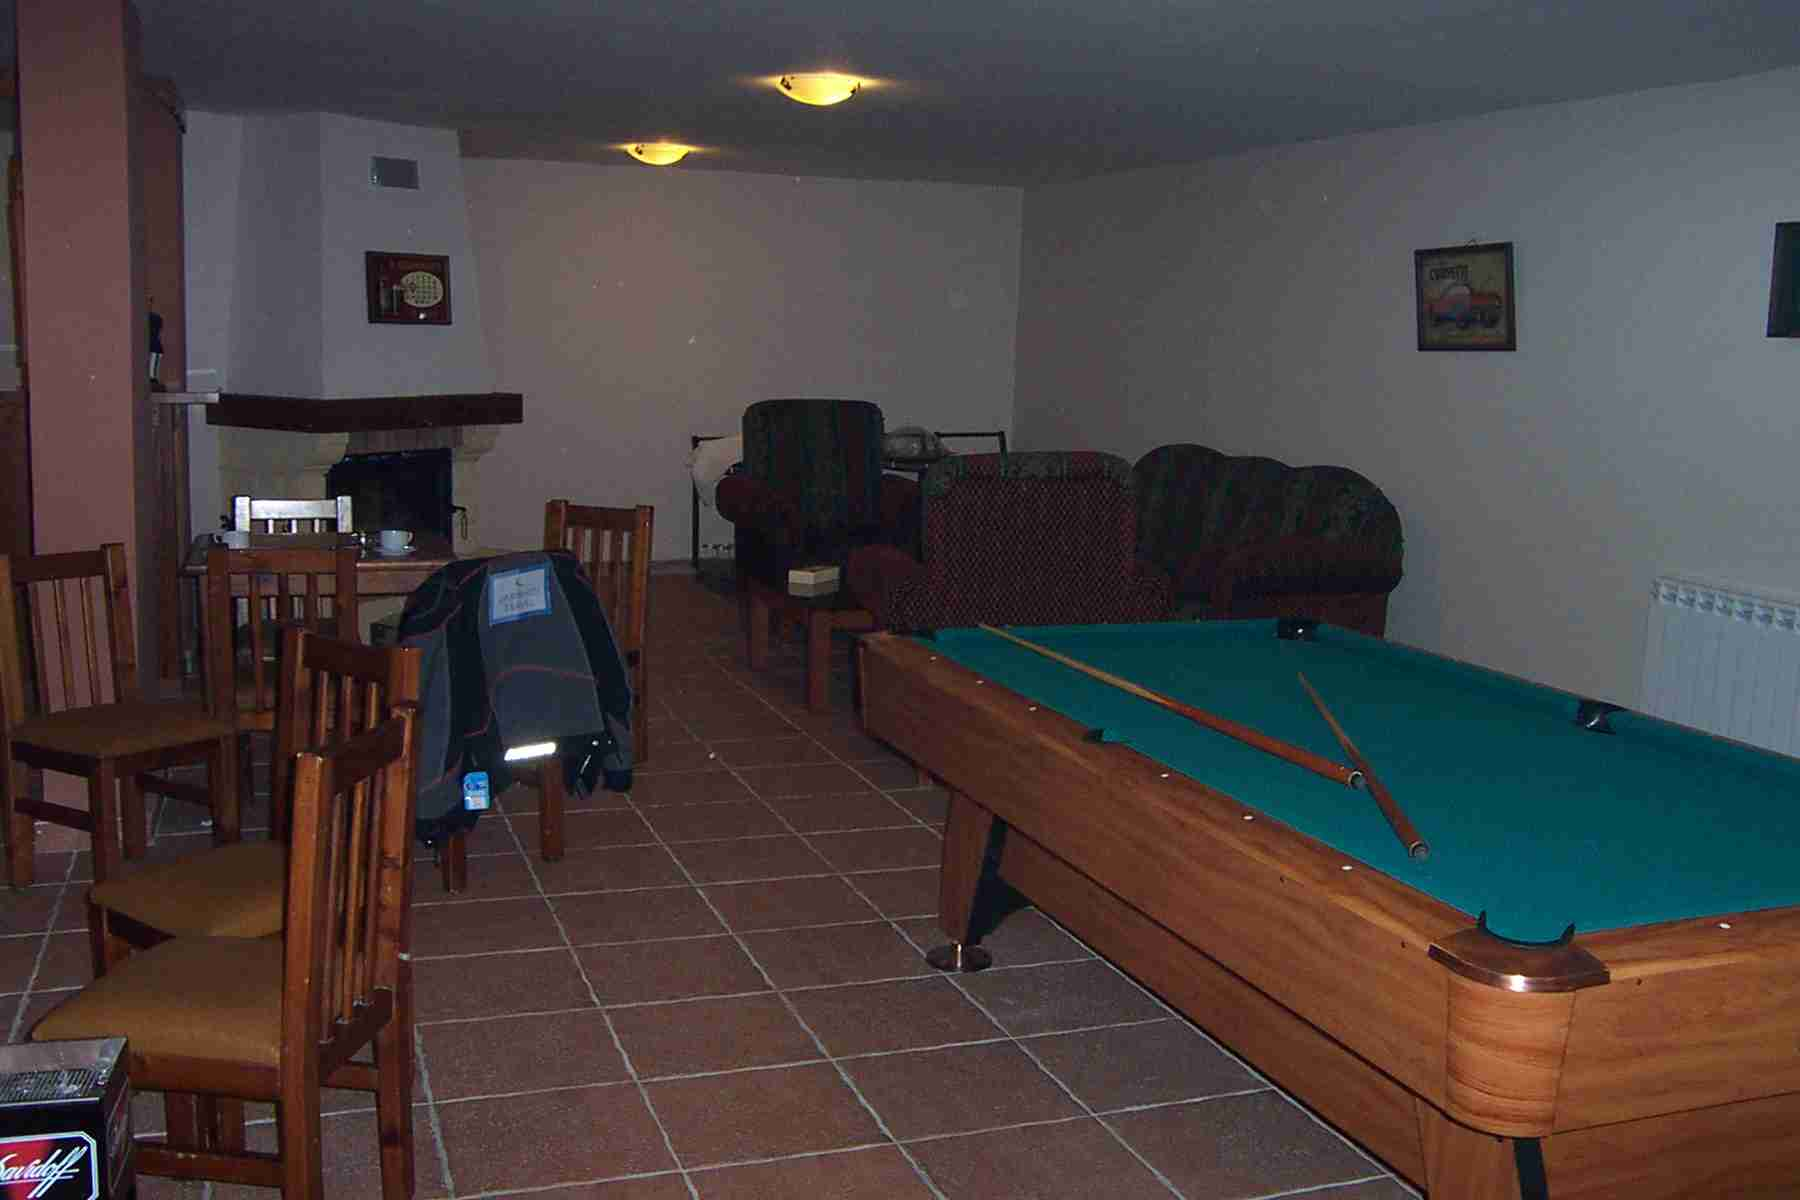 Pool room of Merab Chalets